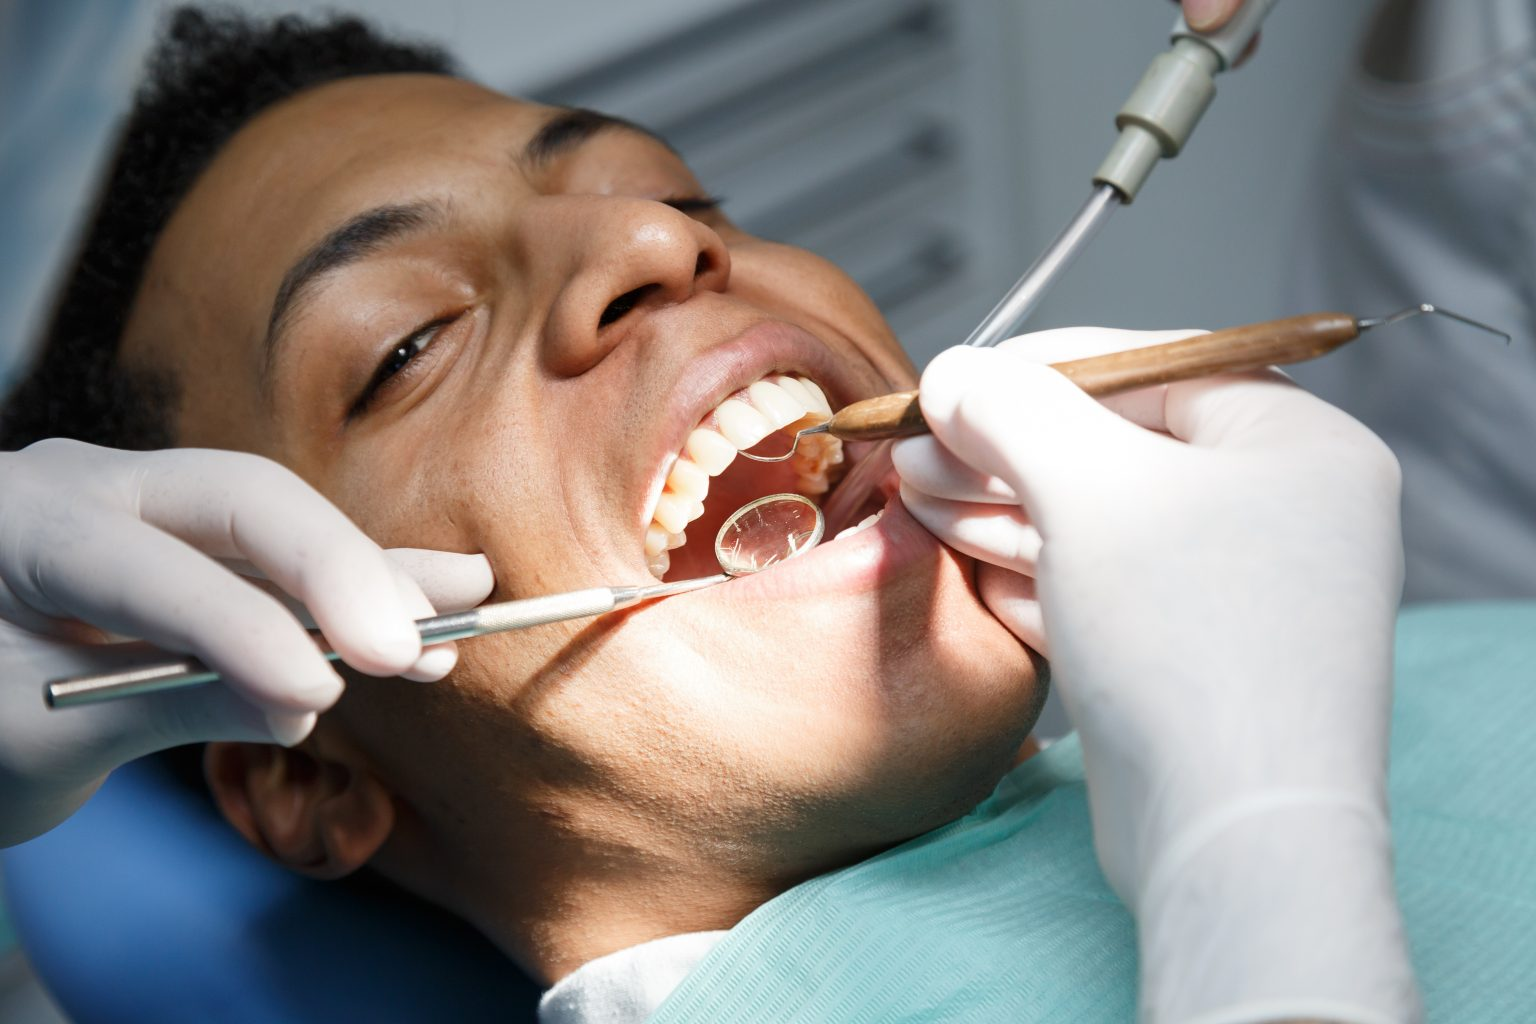 Dentist Examining Oral Cavity Of Young African American Man Working In In Dental Clinic With Assistant.